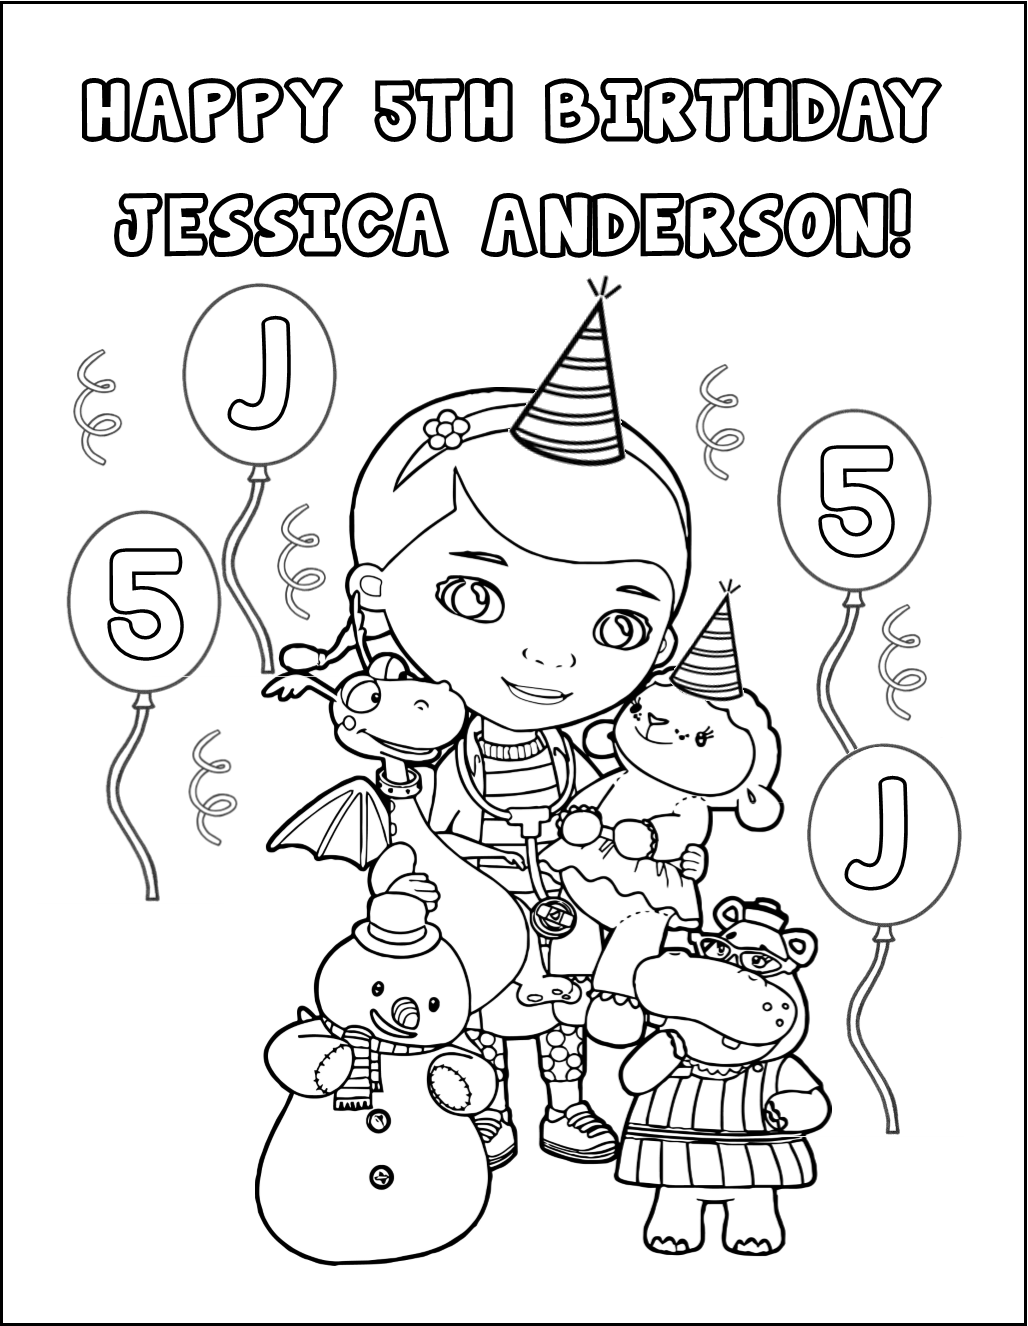 Our Personalized Coloring Page Is A Great Icebreaker And Fun Activity For Your Doc McStuffins Birthday